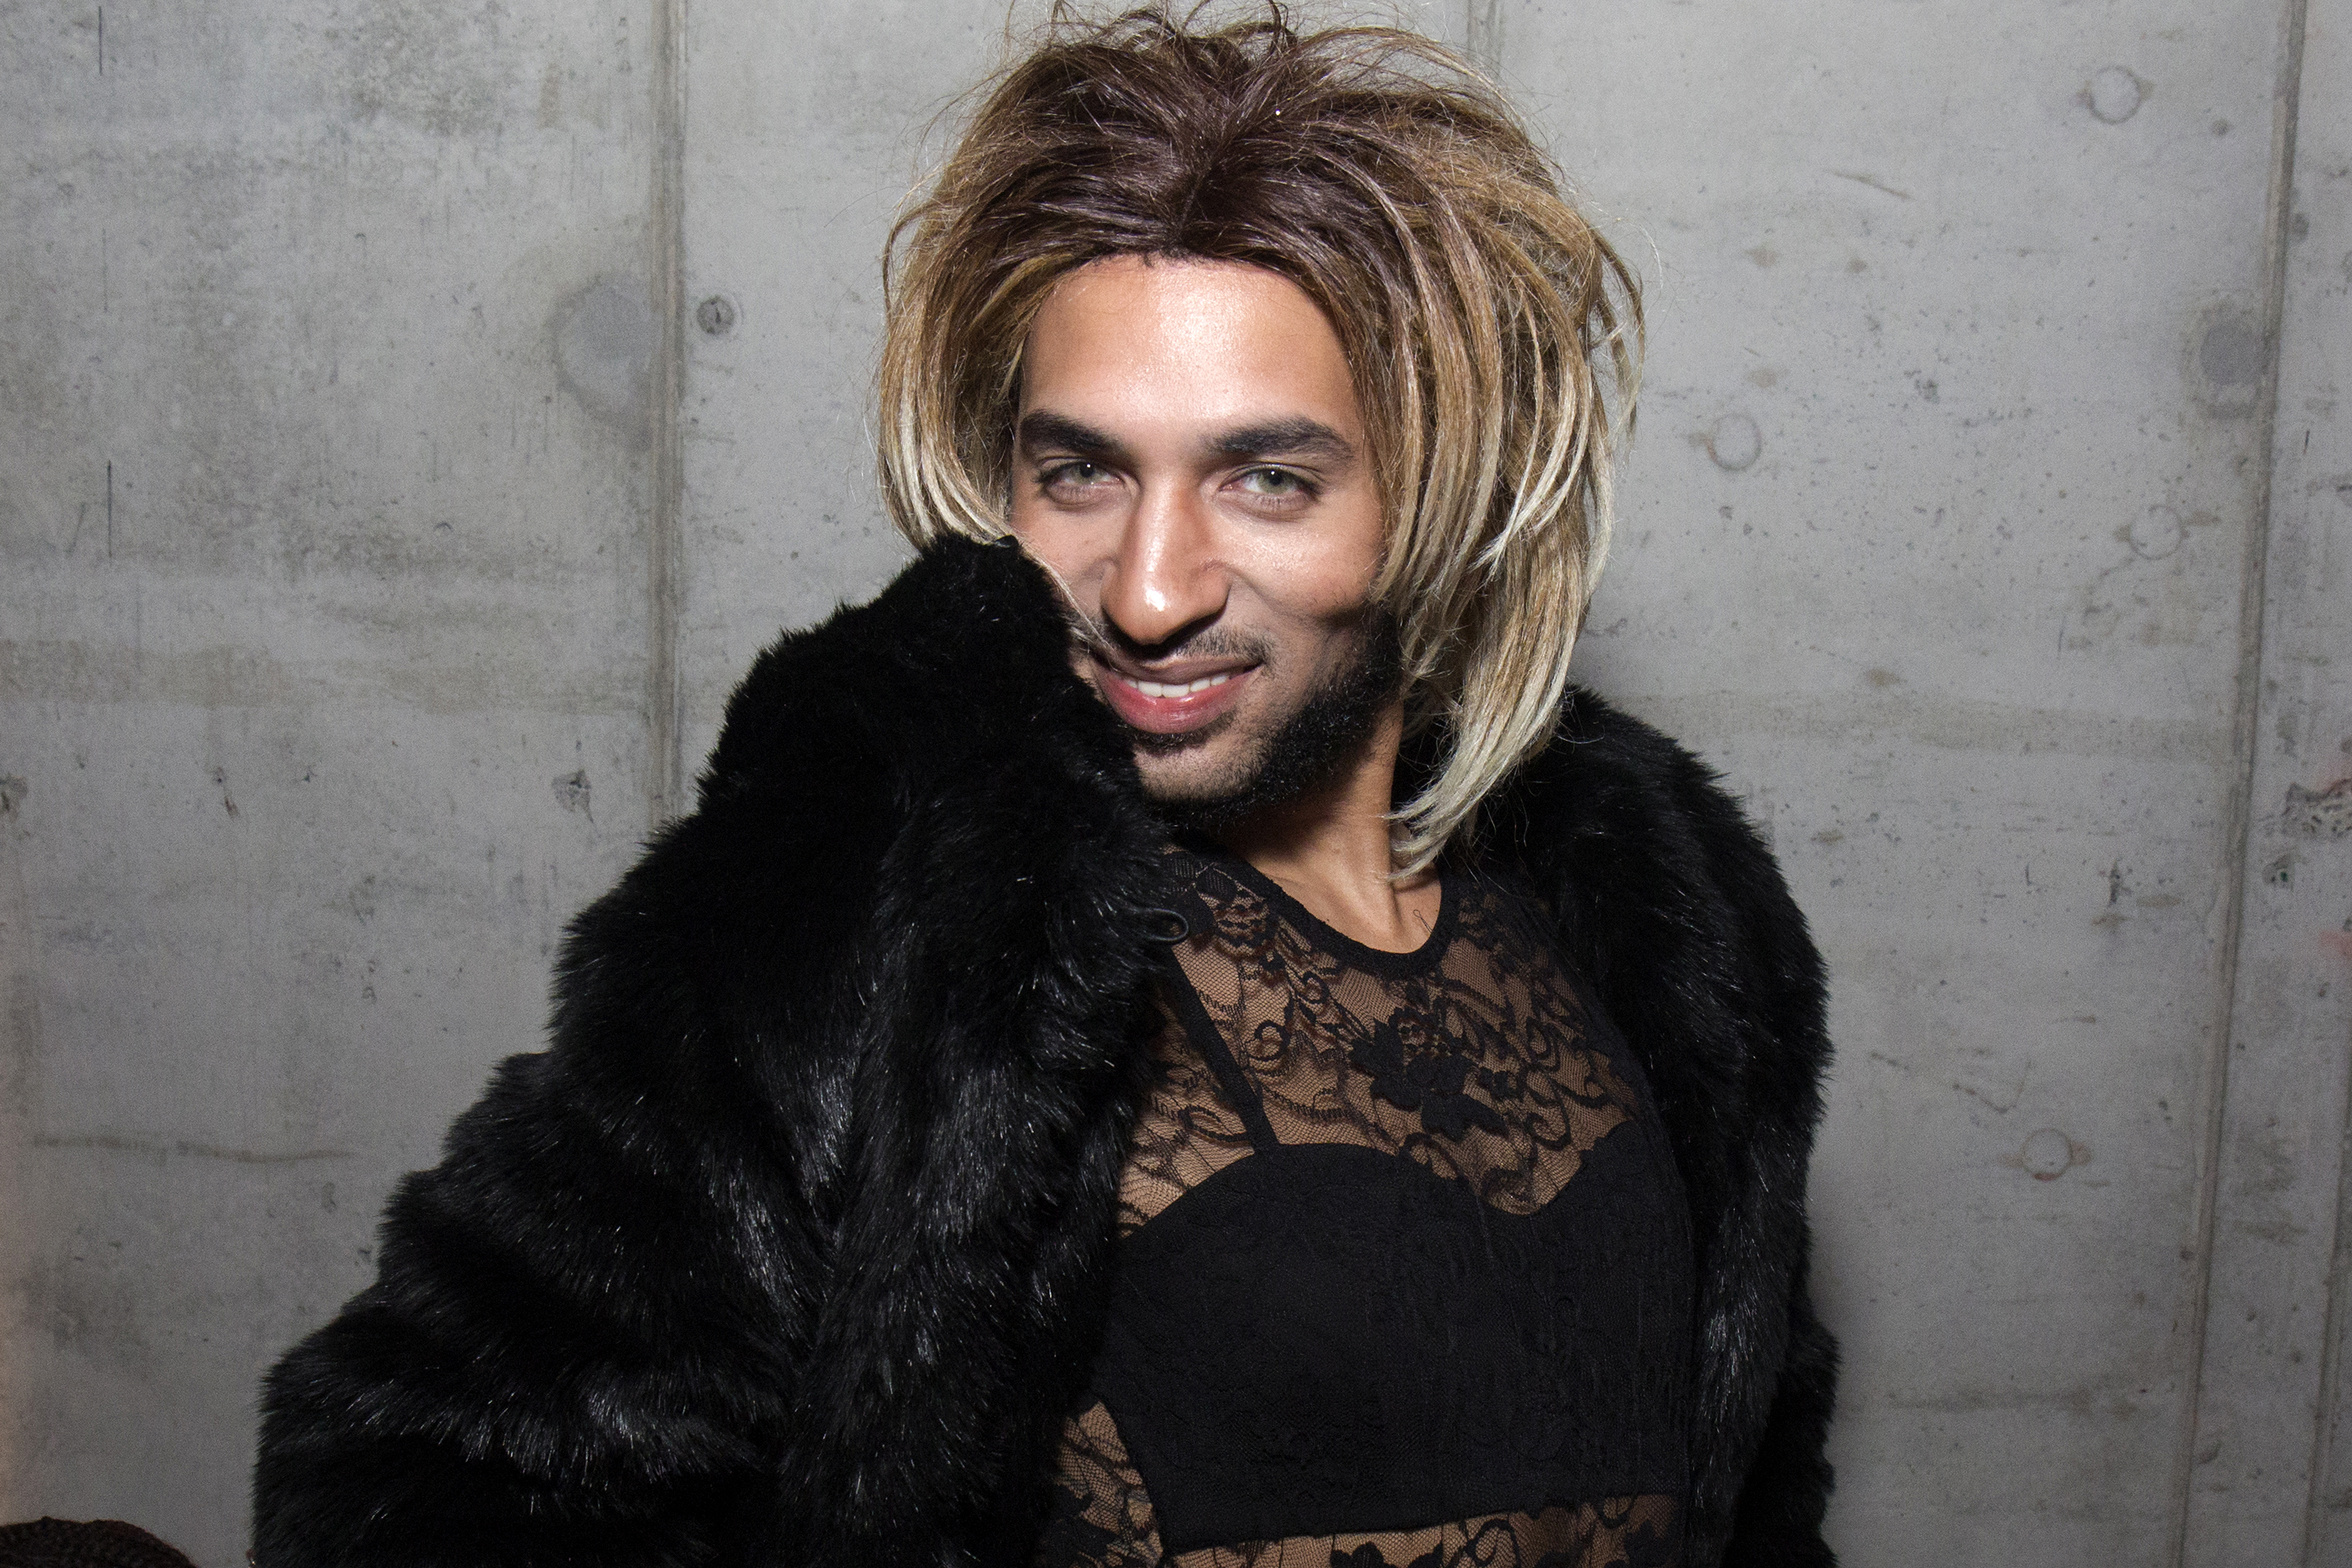 Joanne The Scammer Performs At 'Something Special'